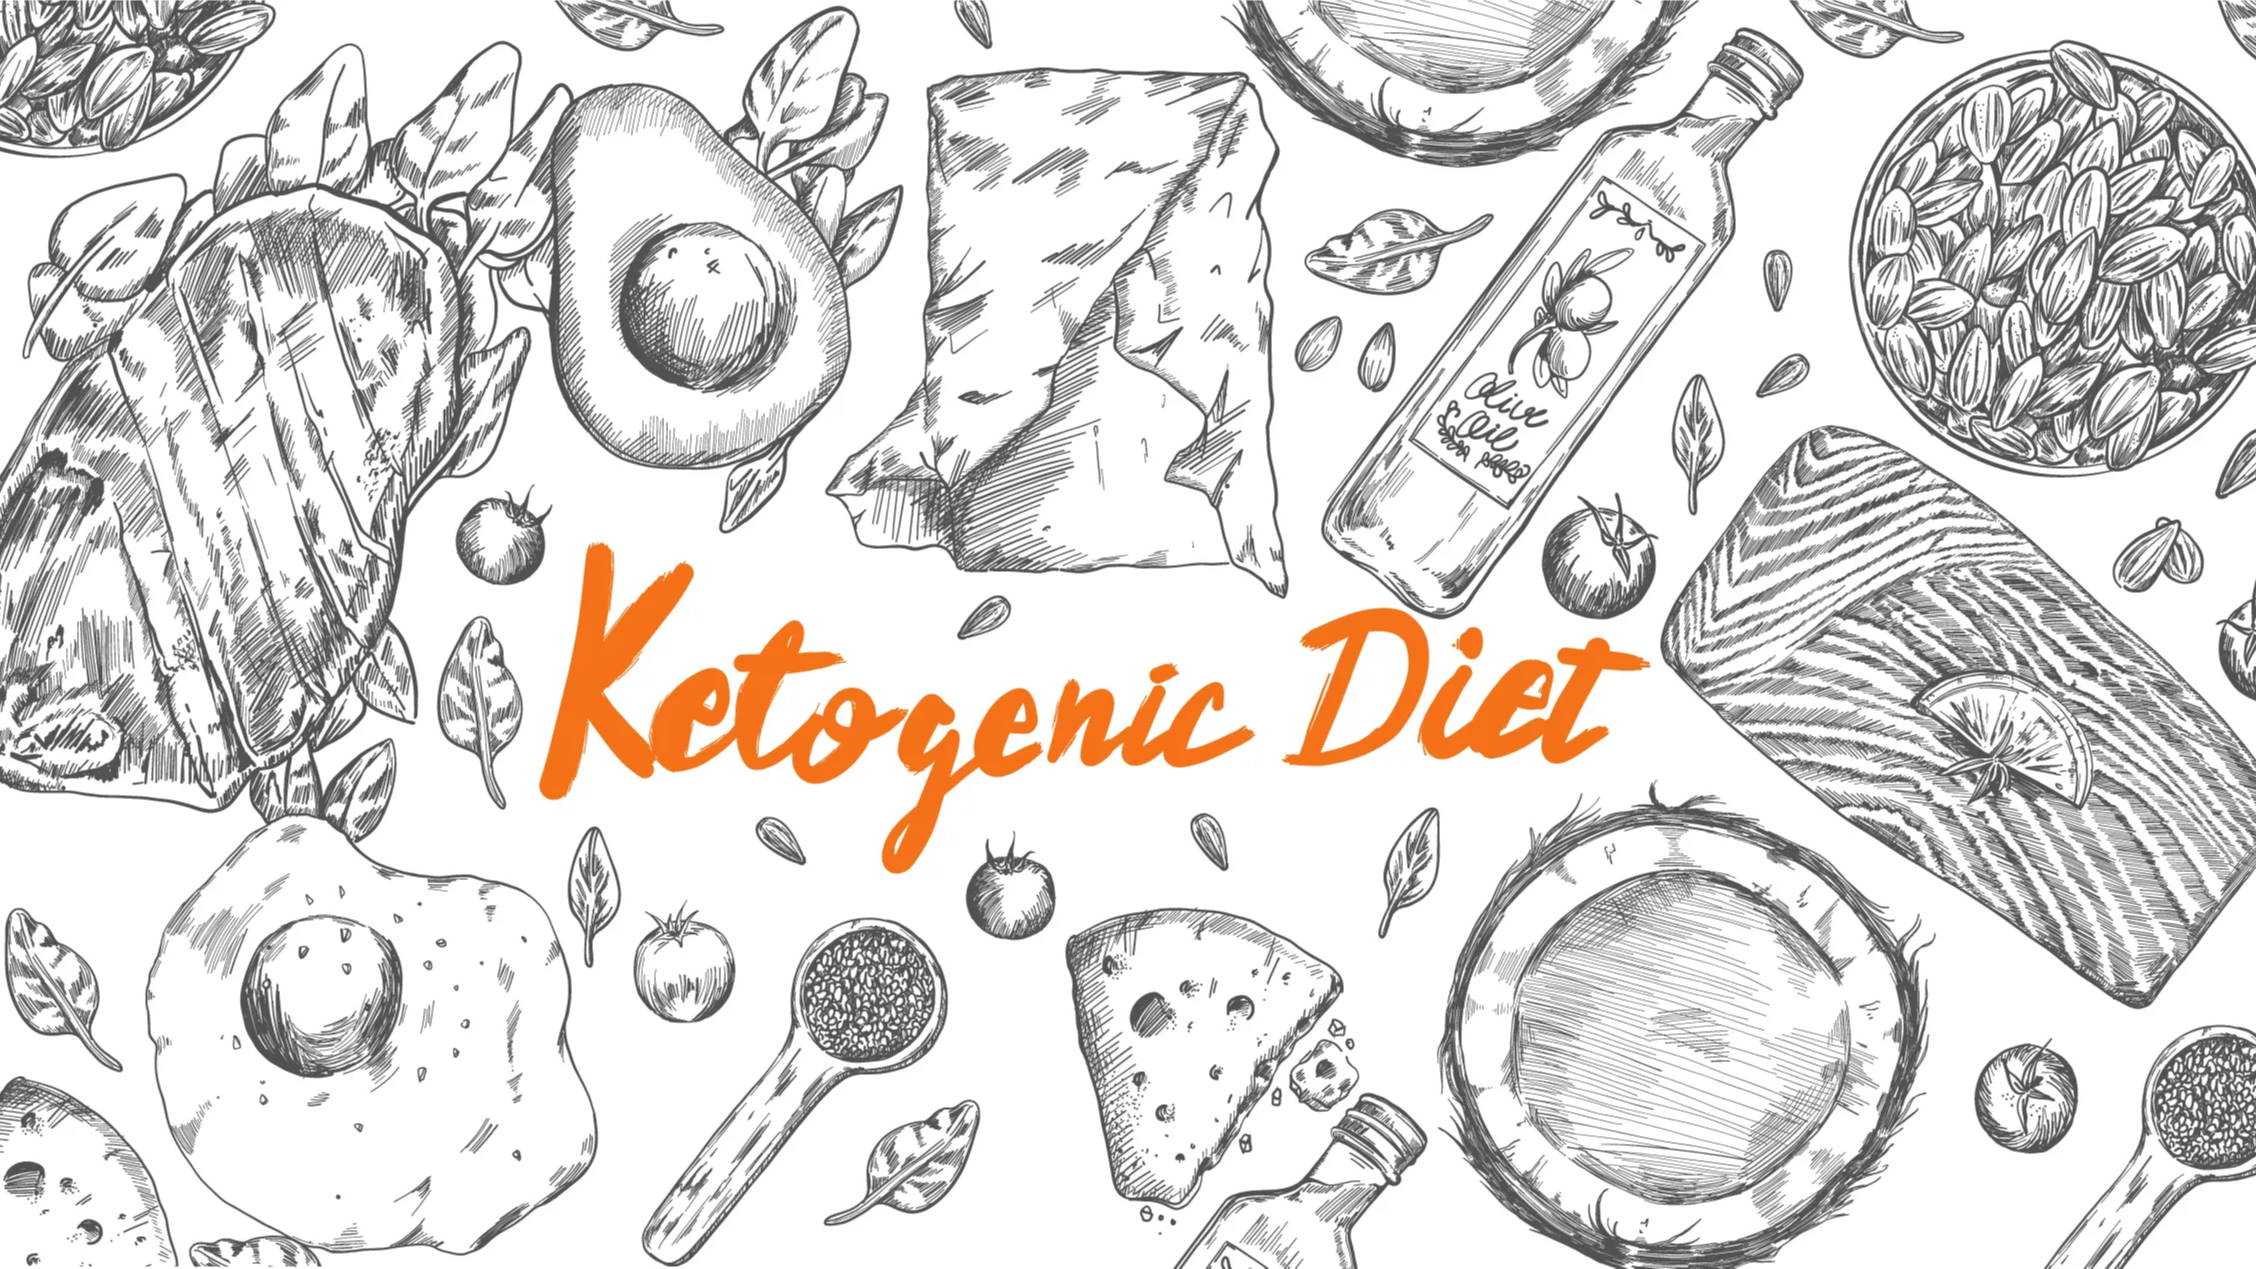 keto diet disatvantages